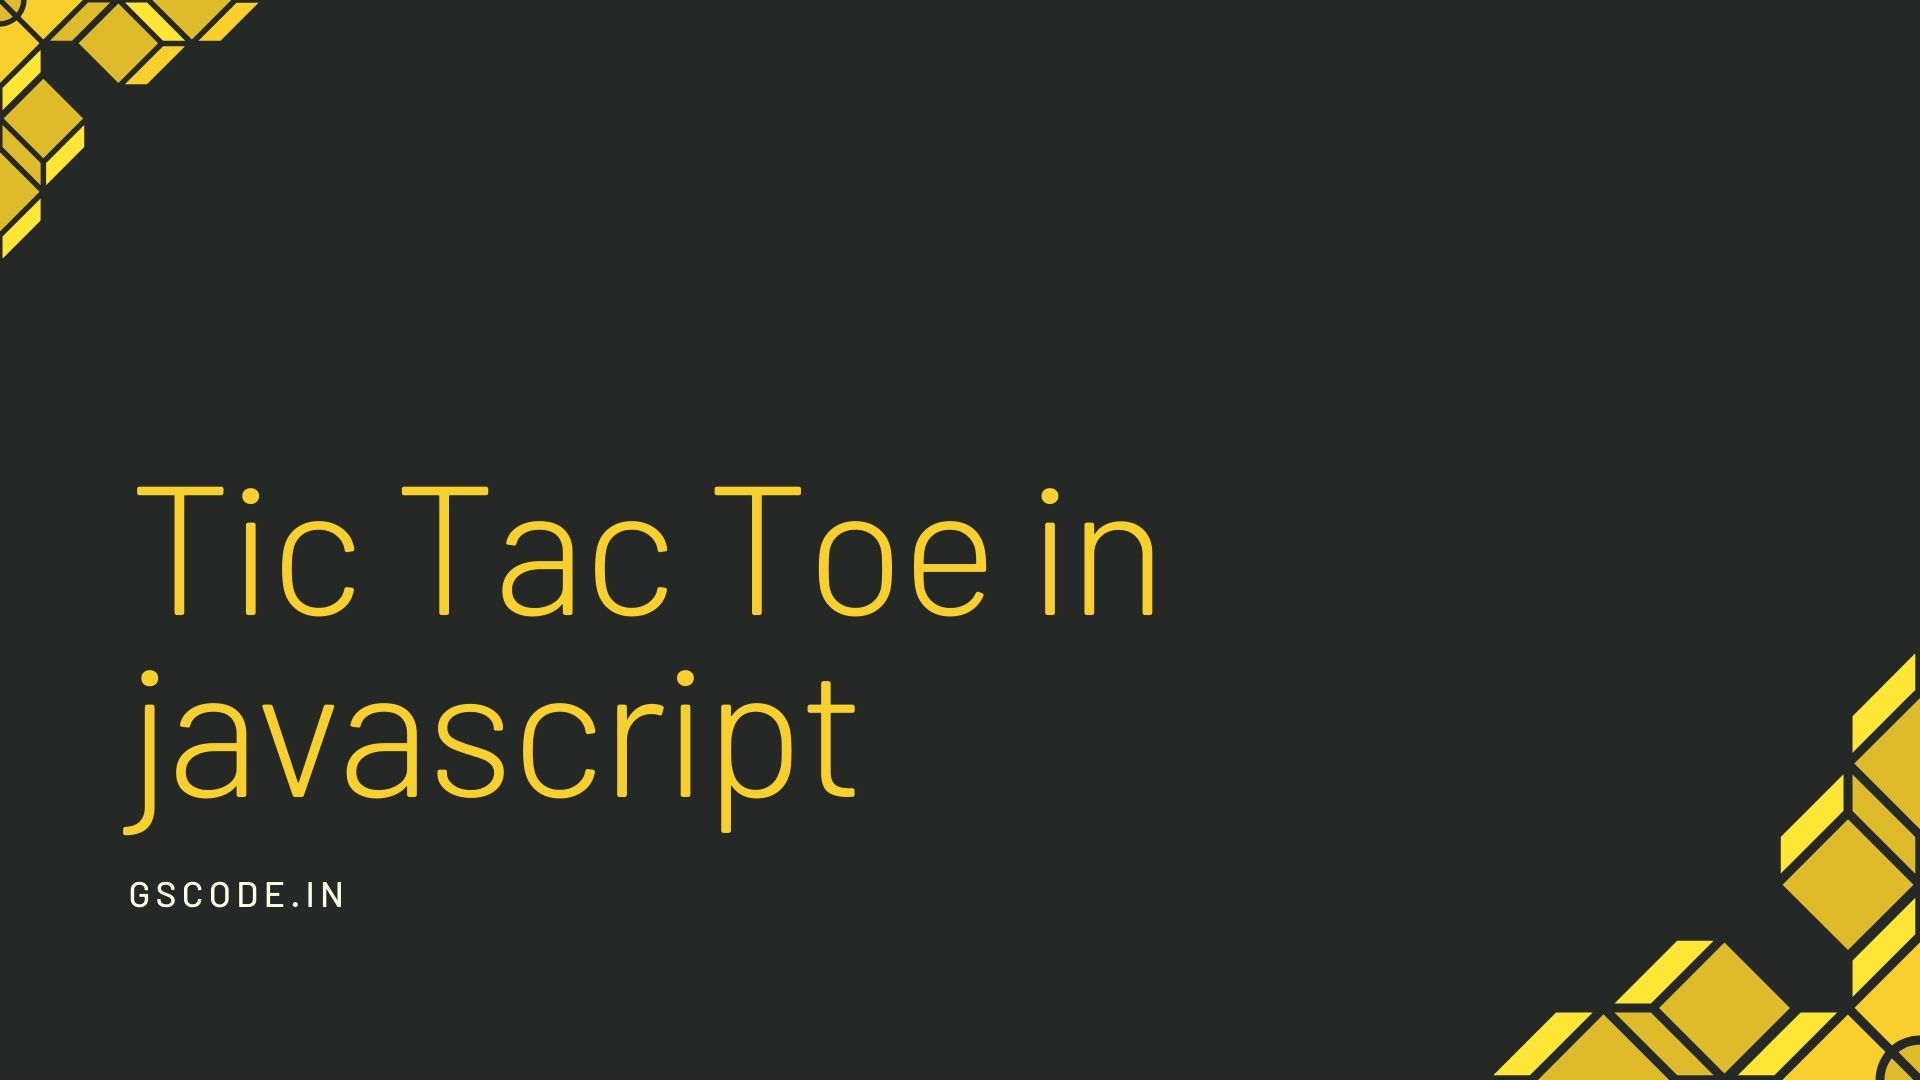 20+ Amazing Tic Tac Toe Games Example made with javascript